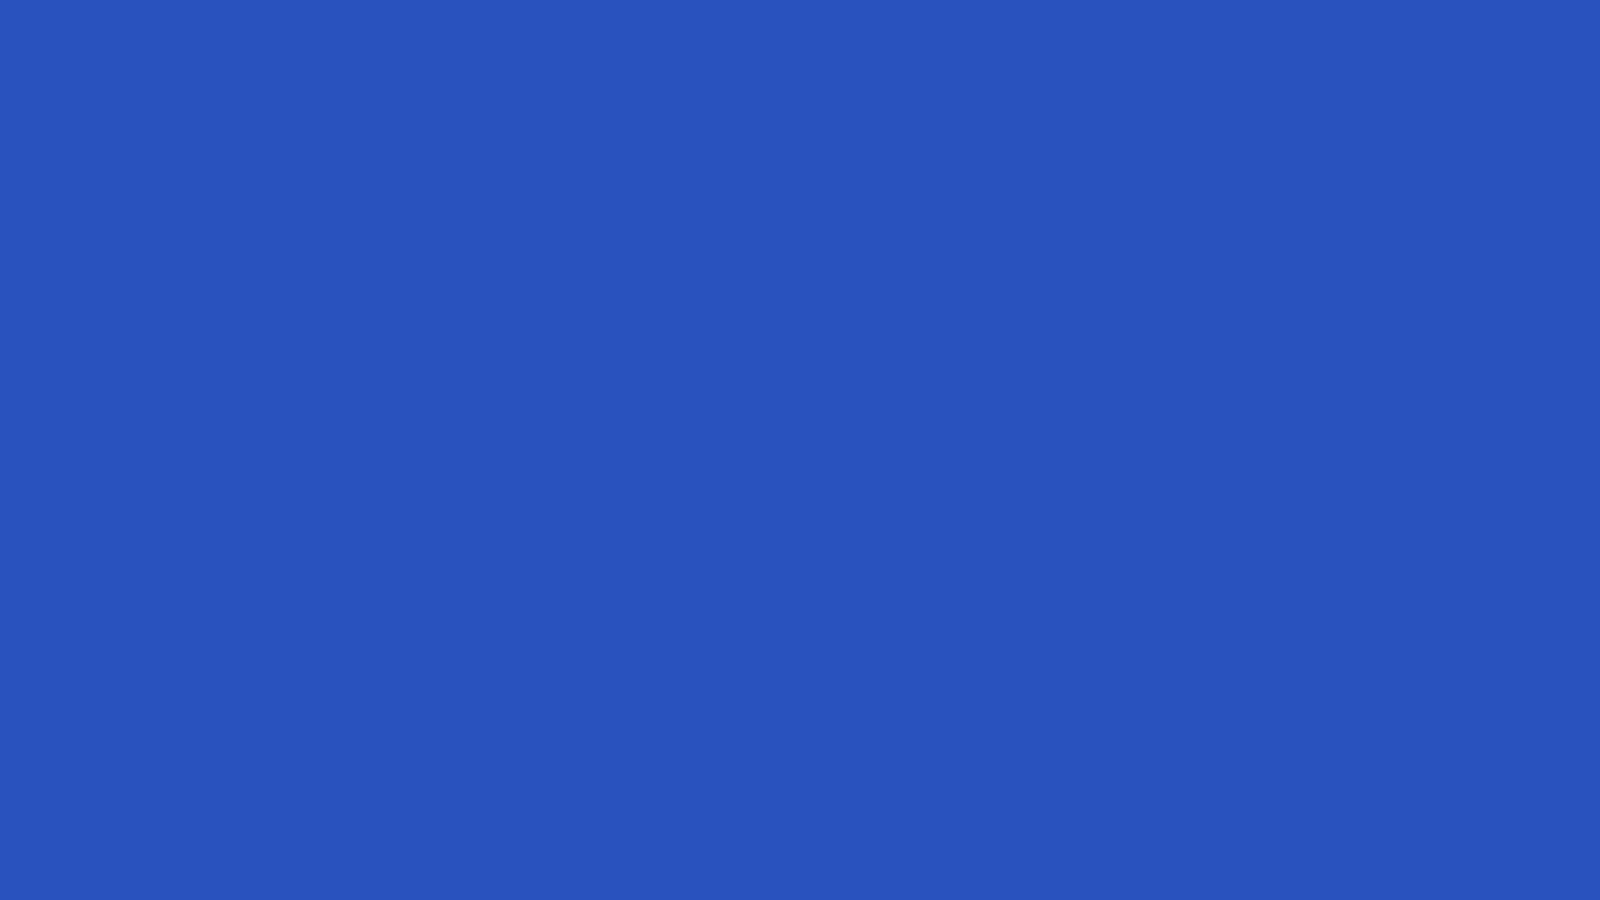 1600x900 Cerulean Blue Solid Color Background